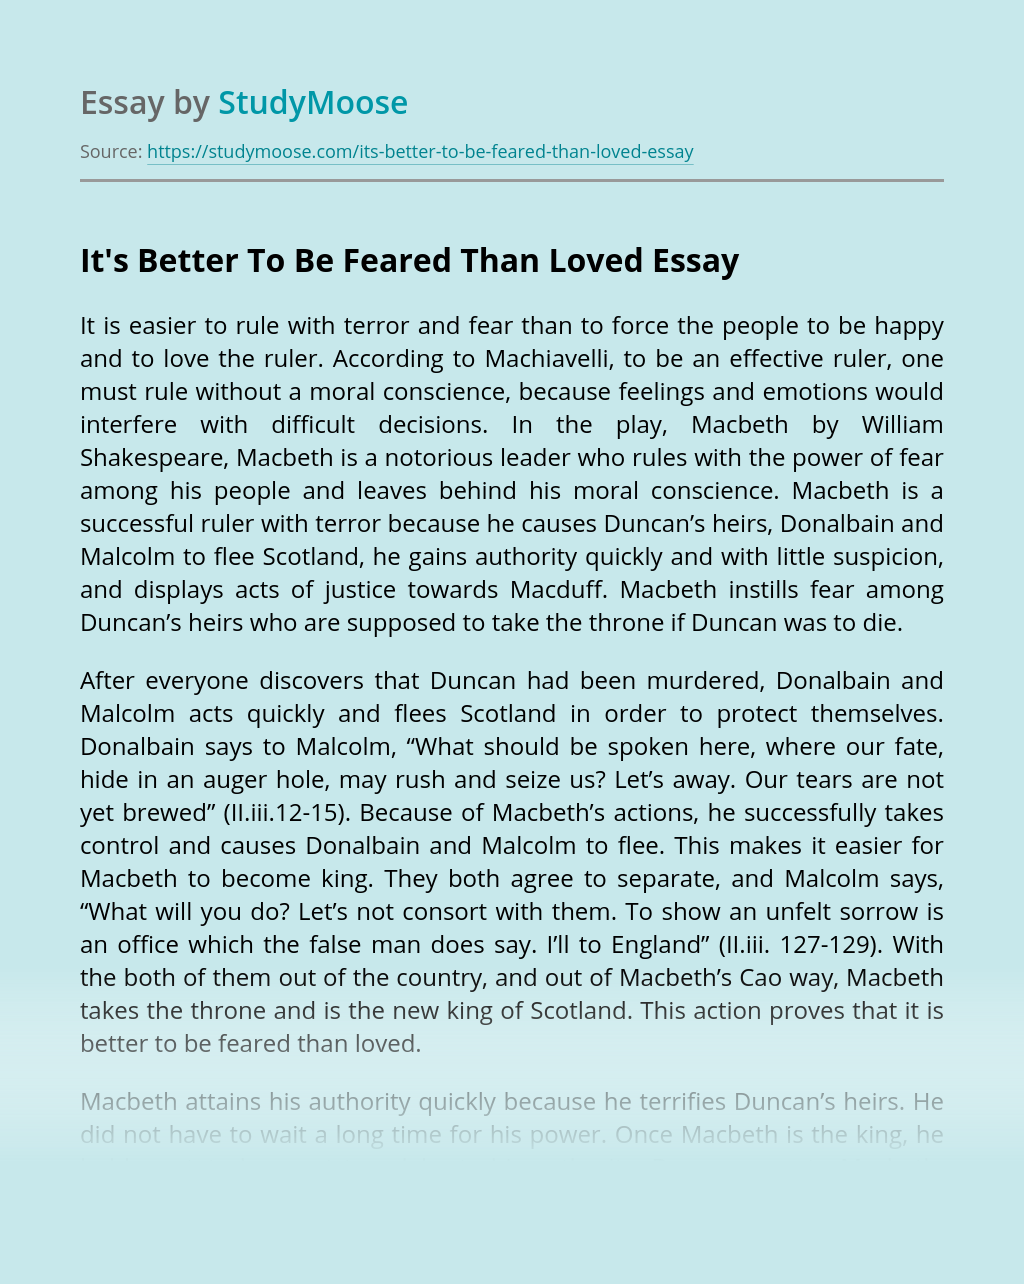 It's Better To Be Feared Than Loved